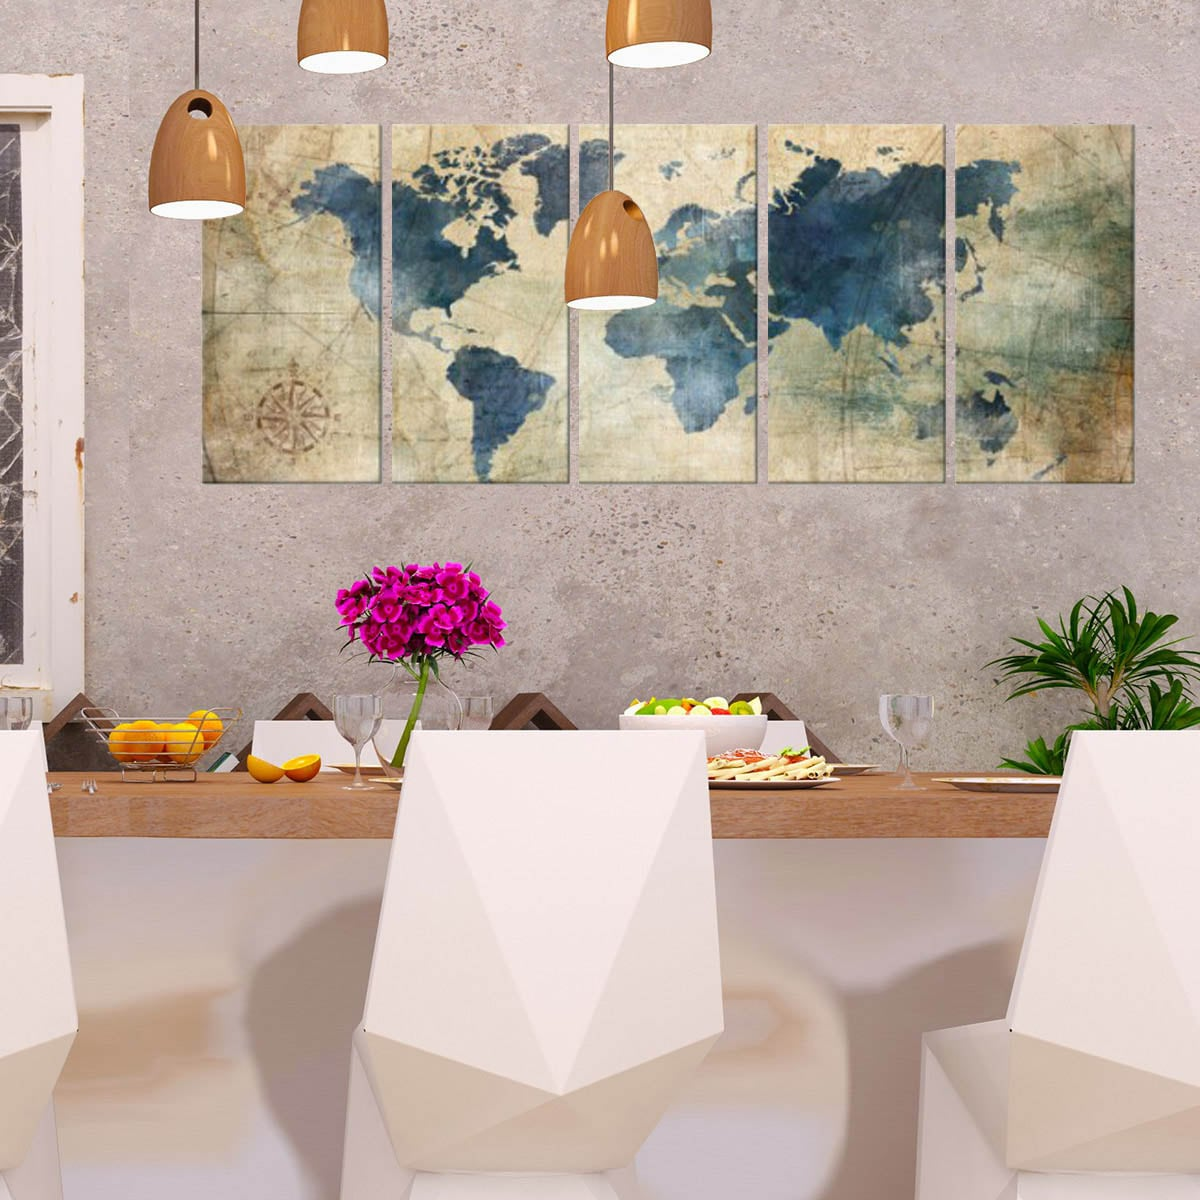 modern wall art print of the world map for a design wall decoration